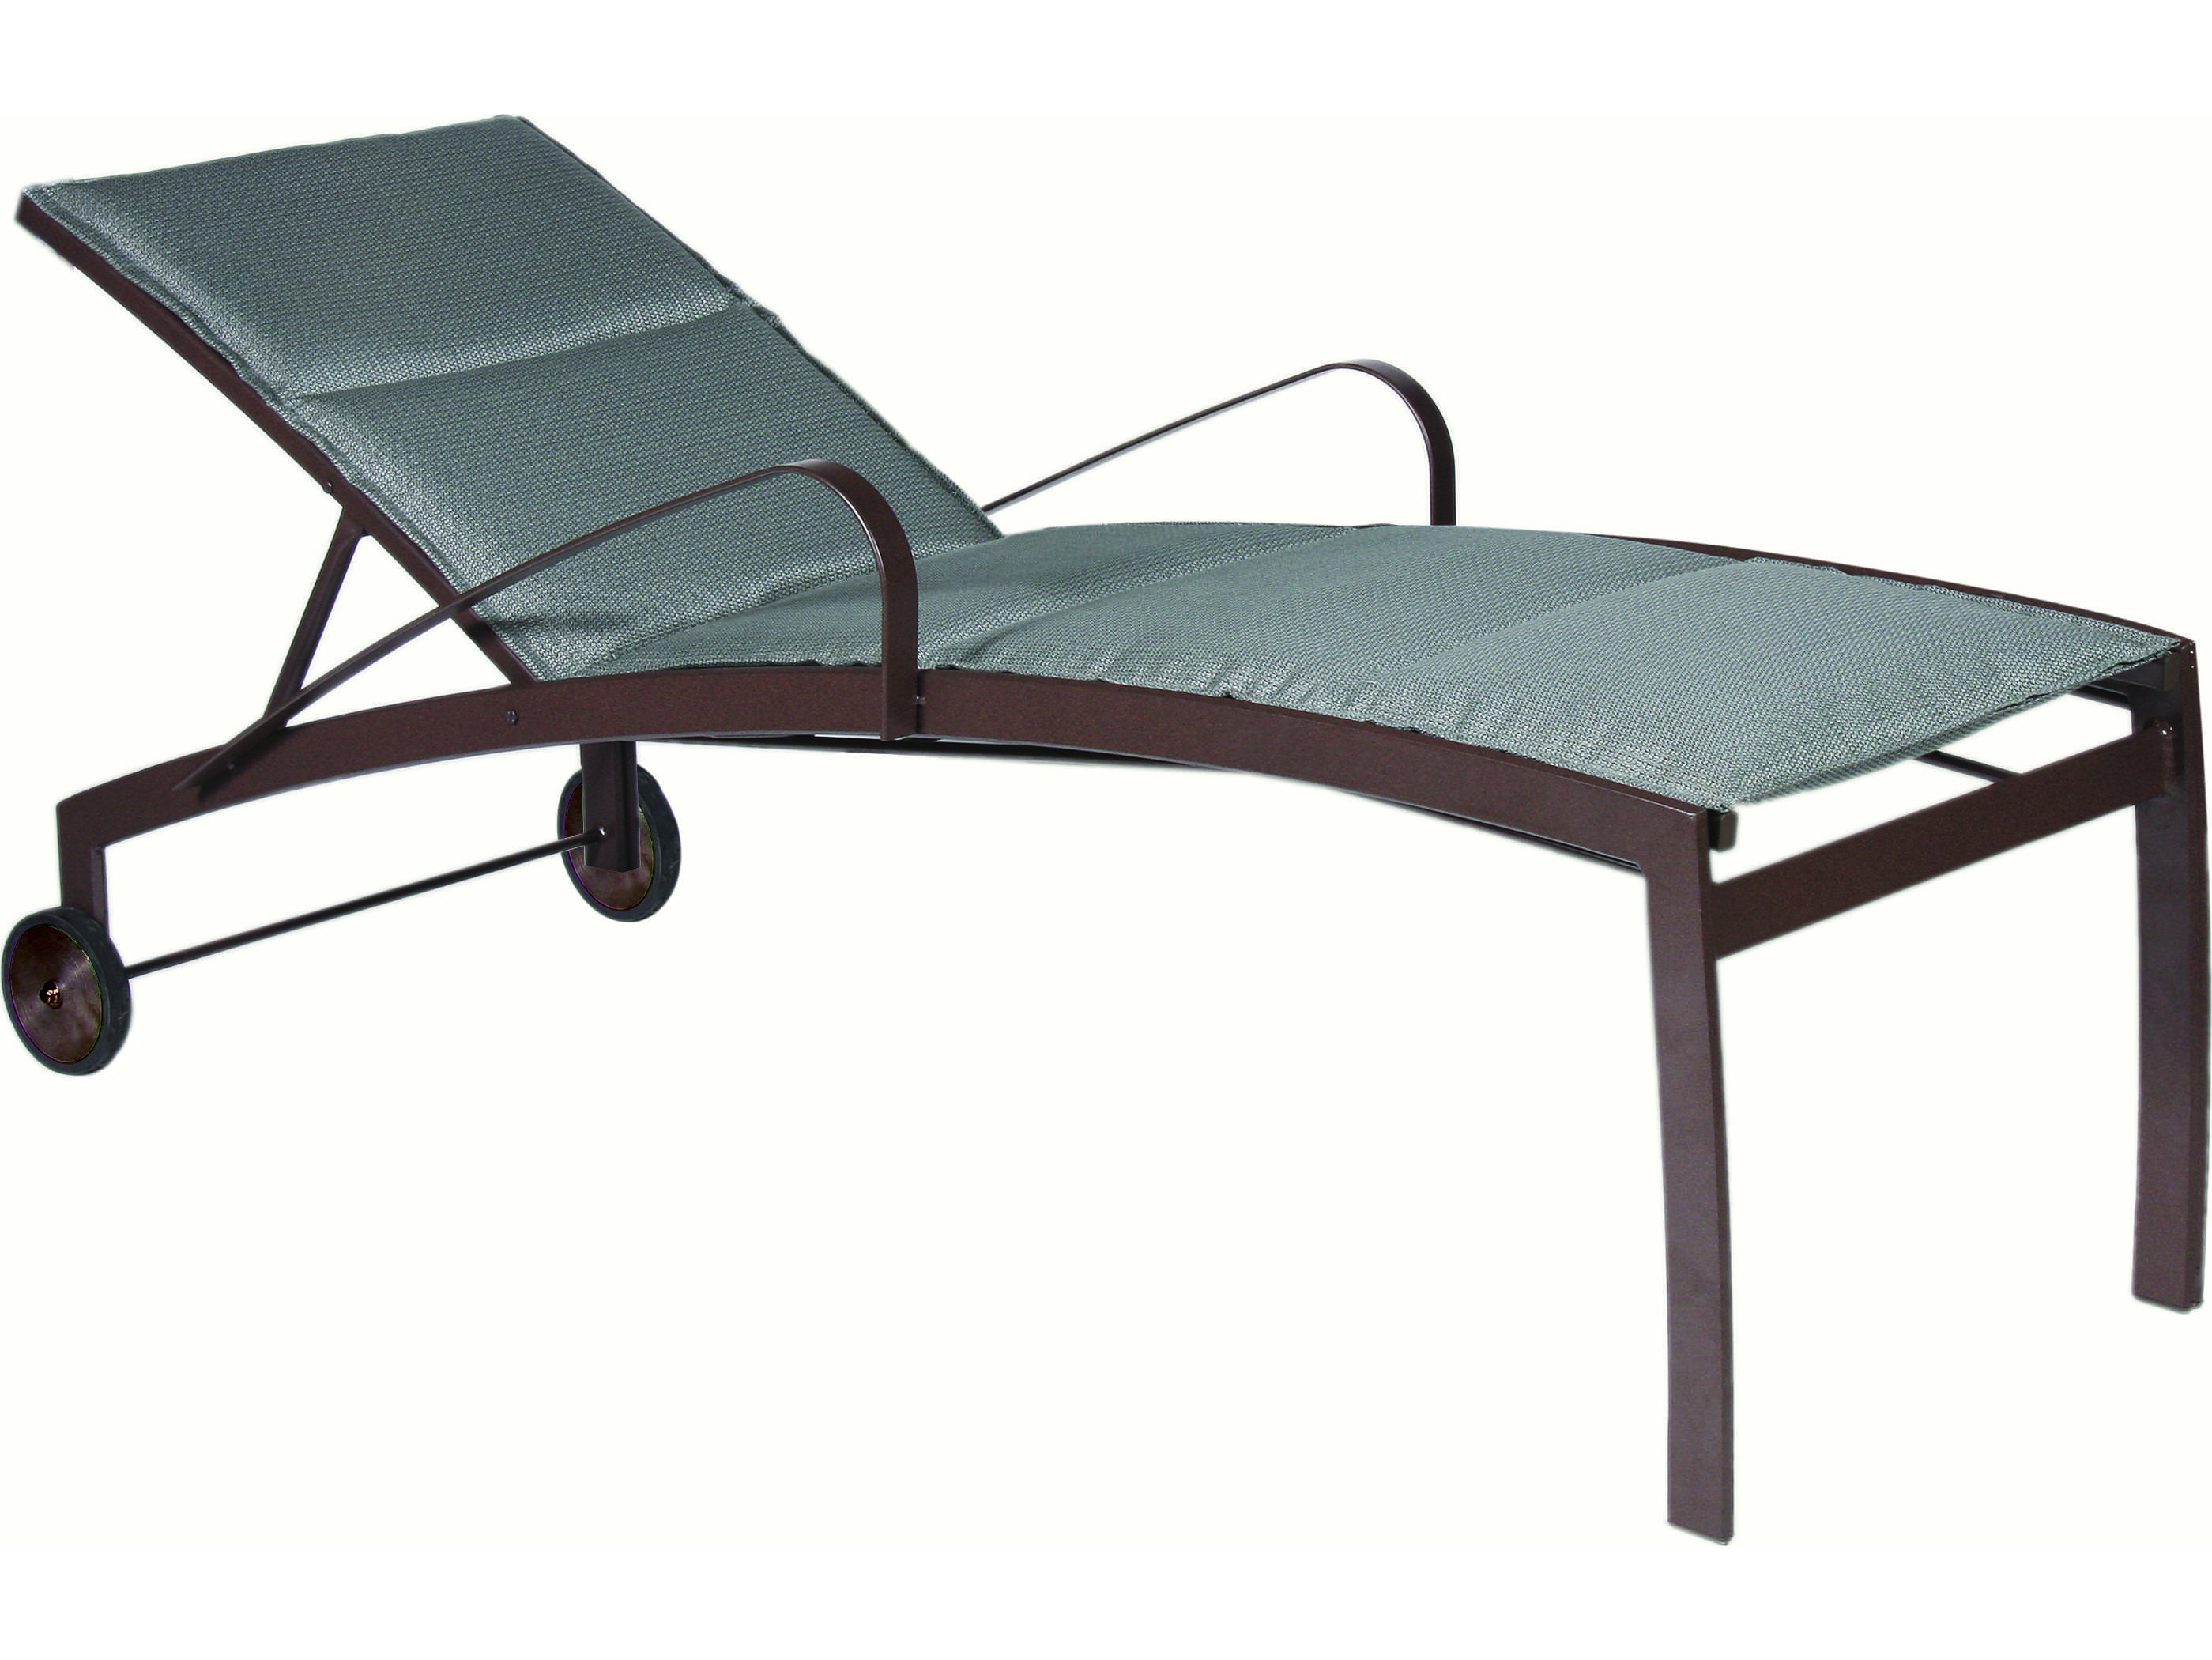 Suncoast vision sling cast aluminum chaise lounge with for Cast aluminum chaise lounge